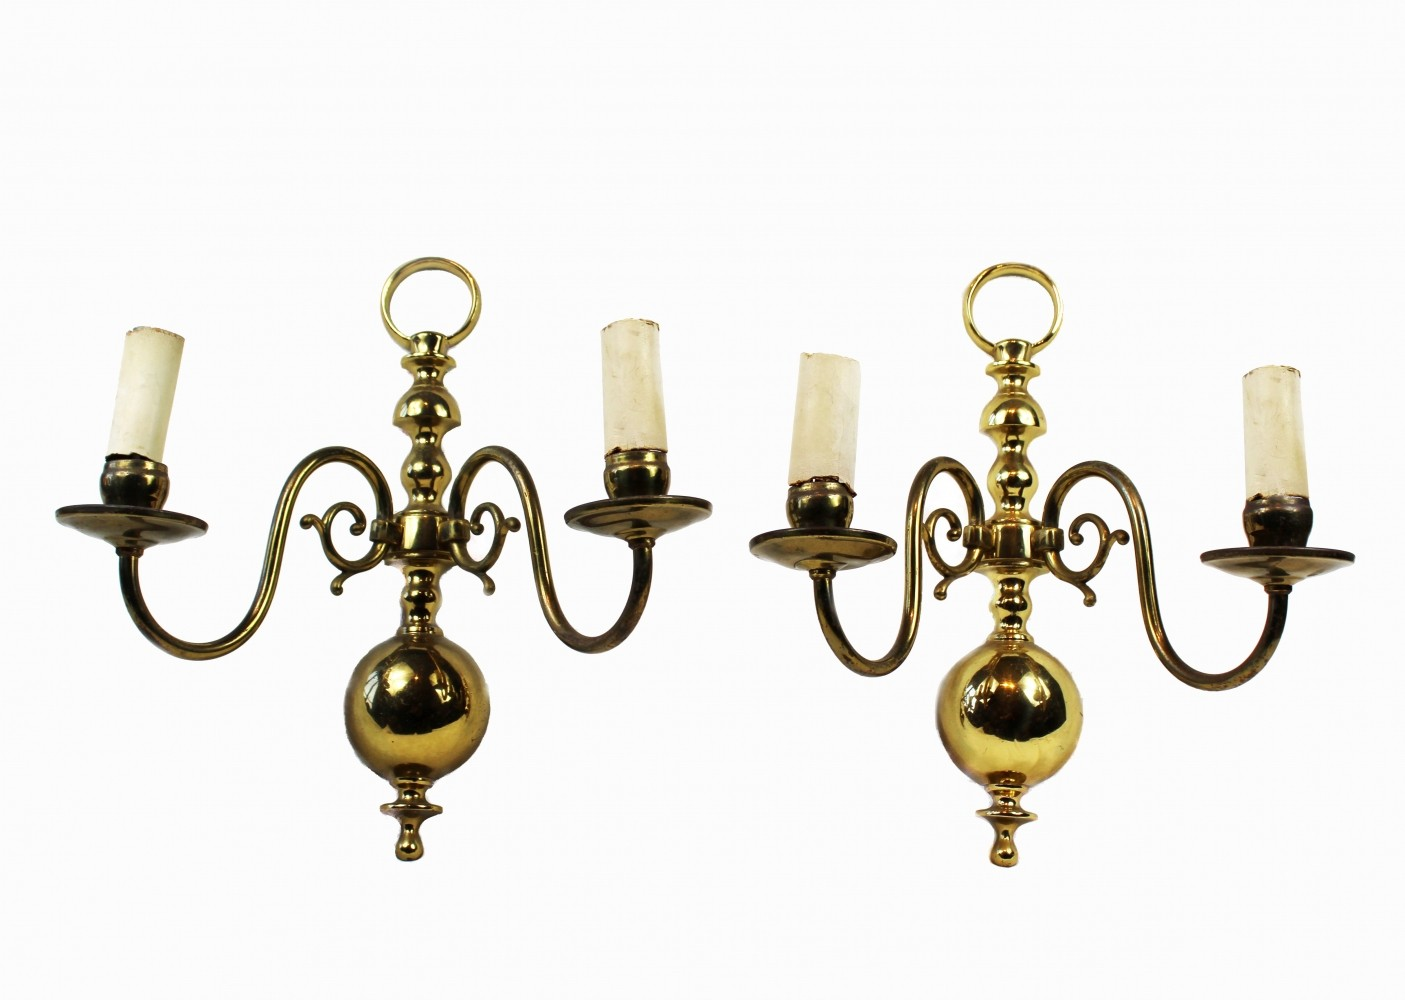 Set of 2 french brass applique wall lights 1970s #78770